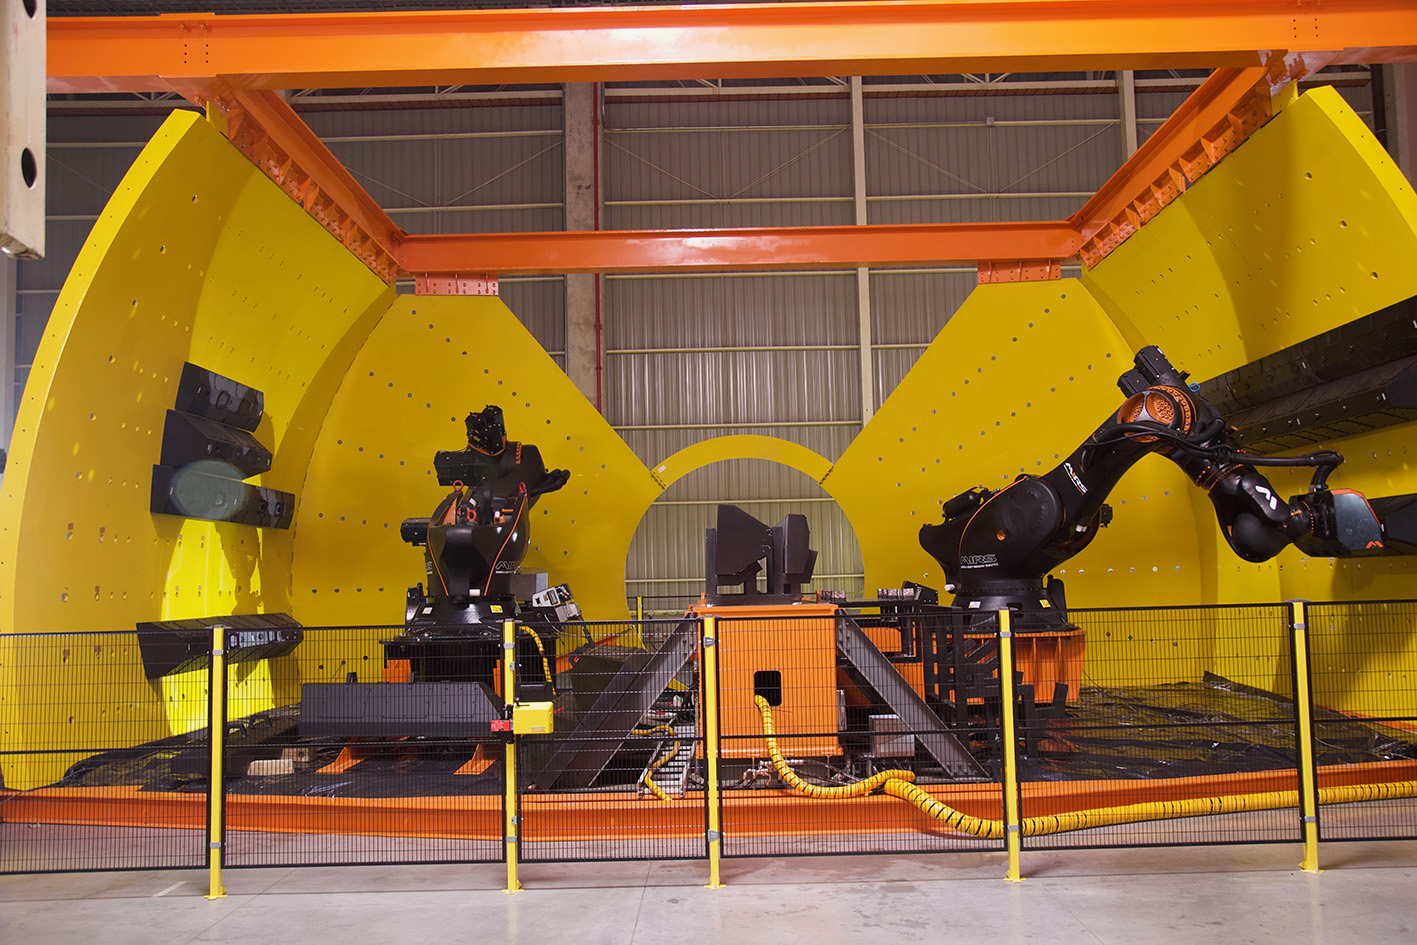 Chile's MIRS launches world first EMMR robotic mill lining innovation - International Mining